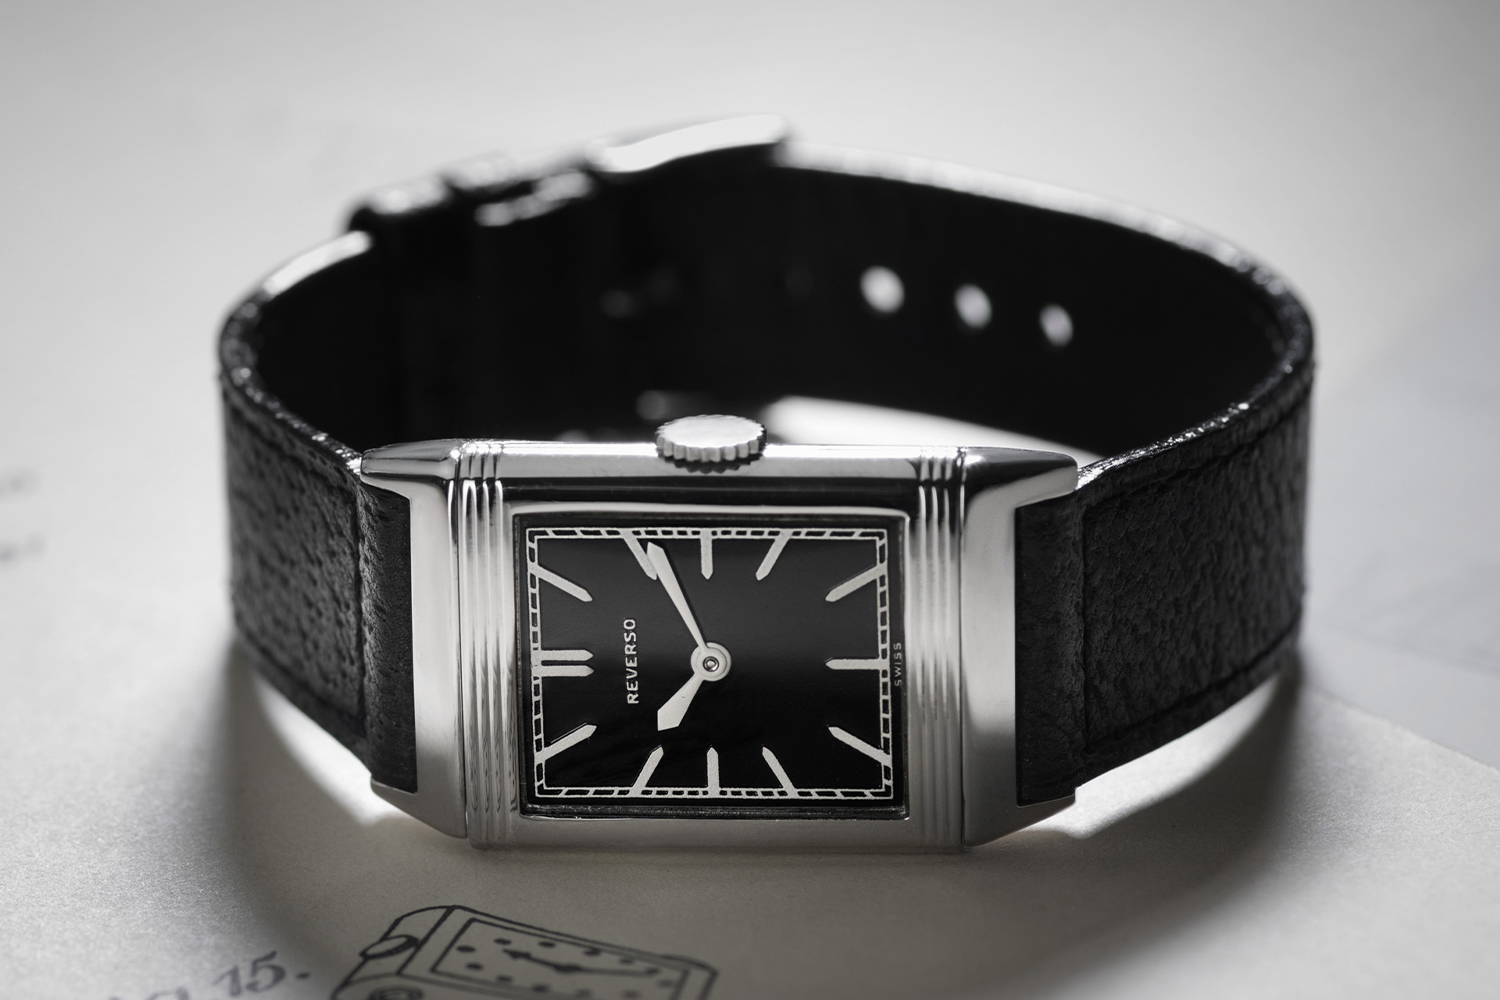 The first-ever Reverso from 1931